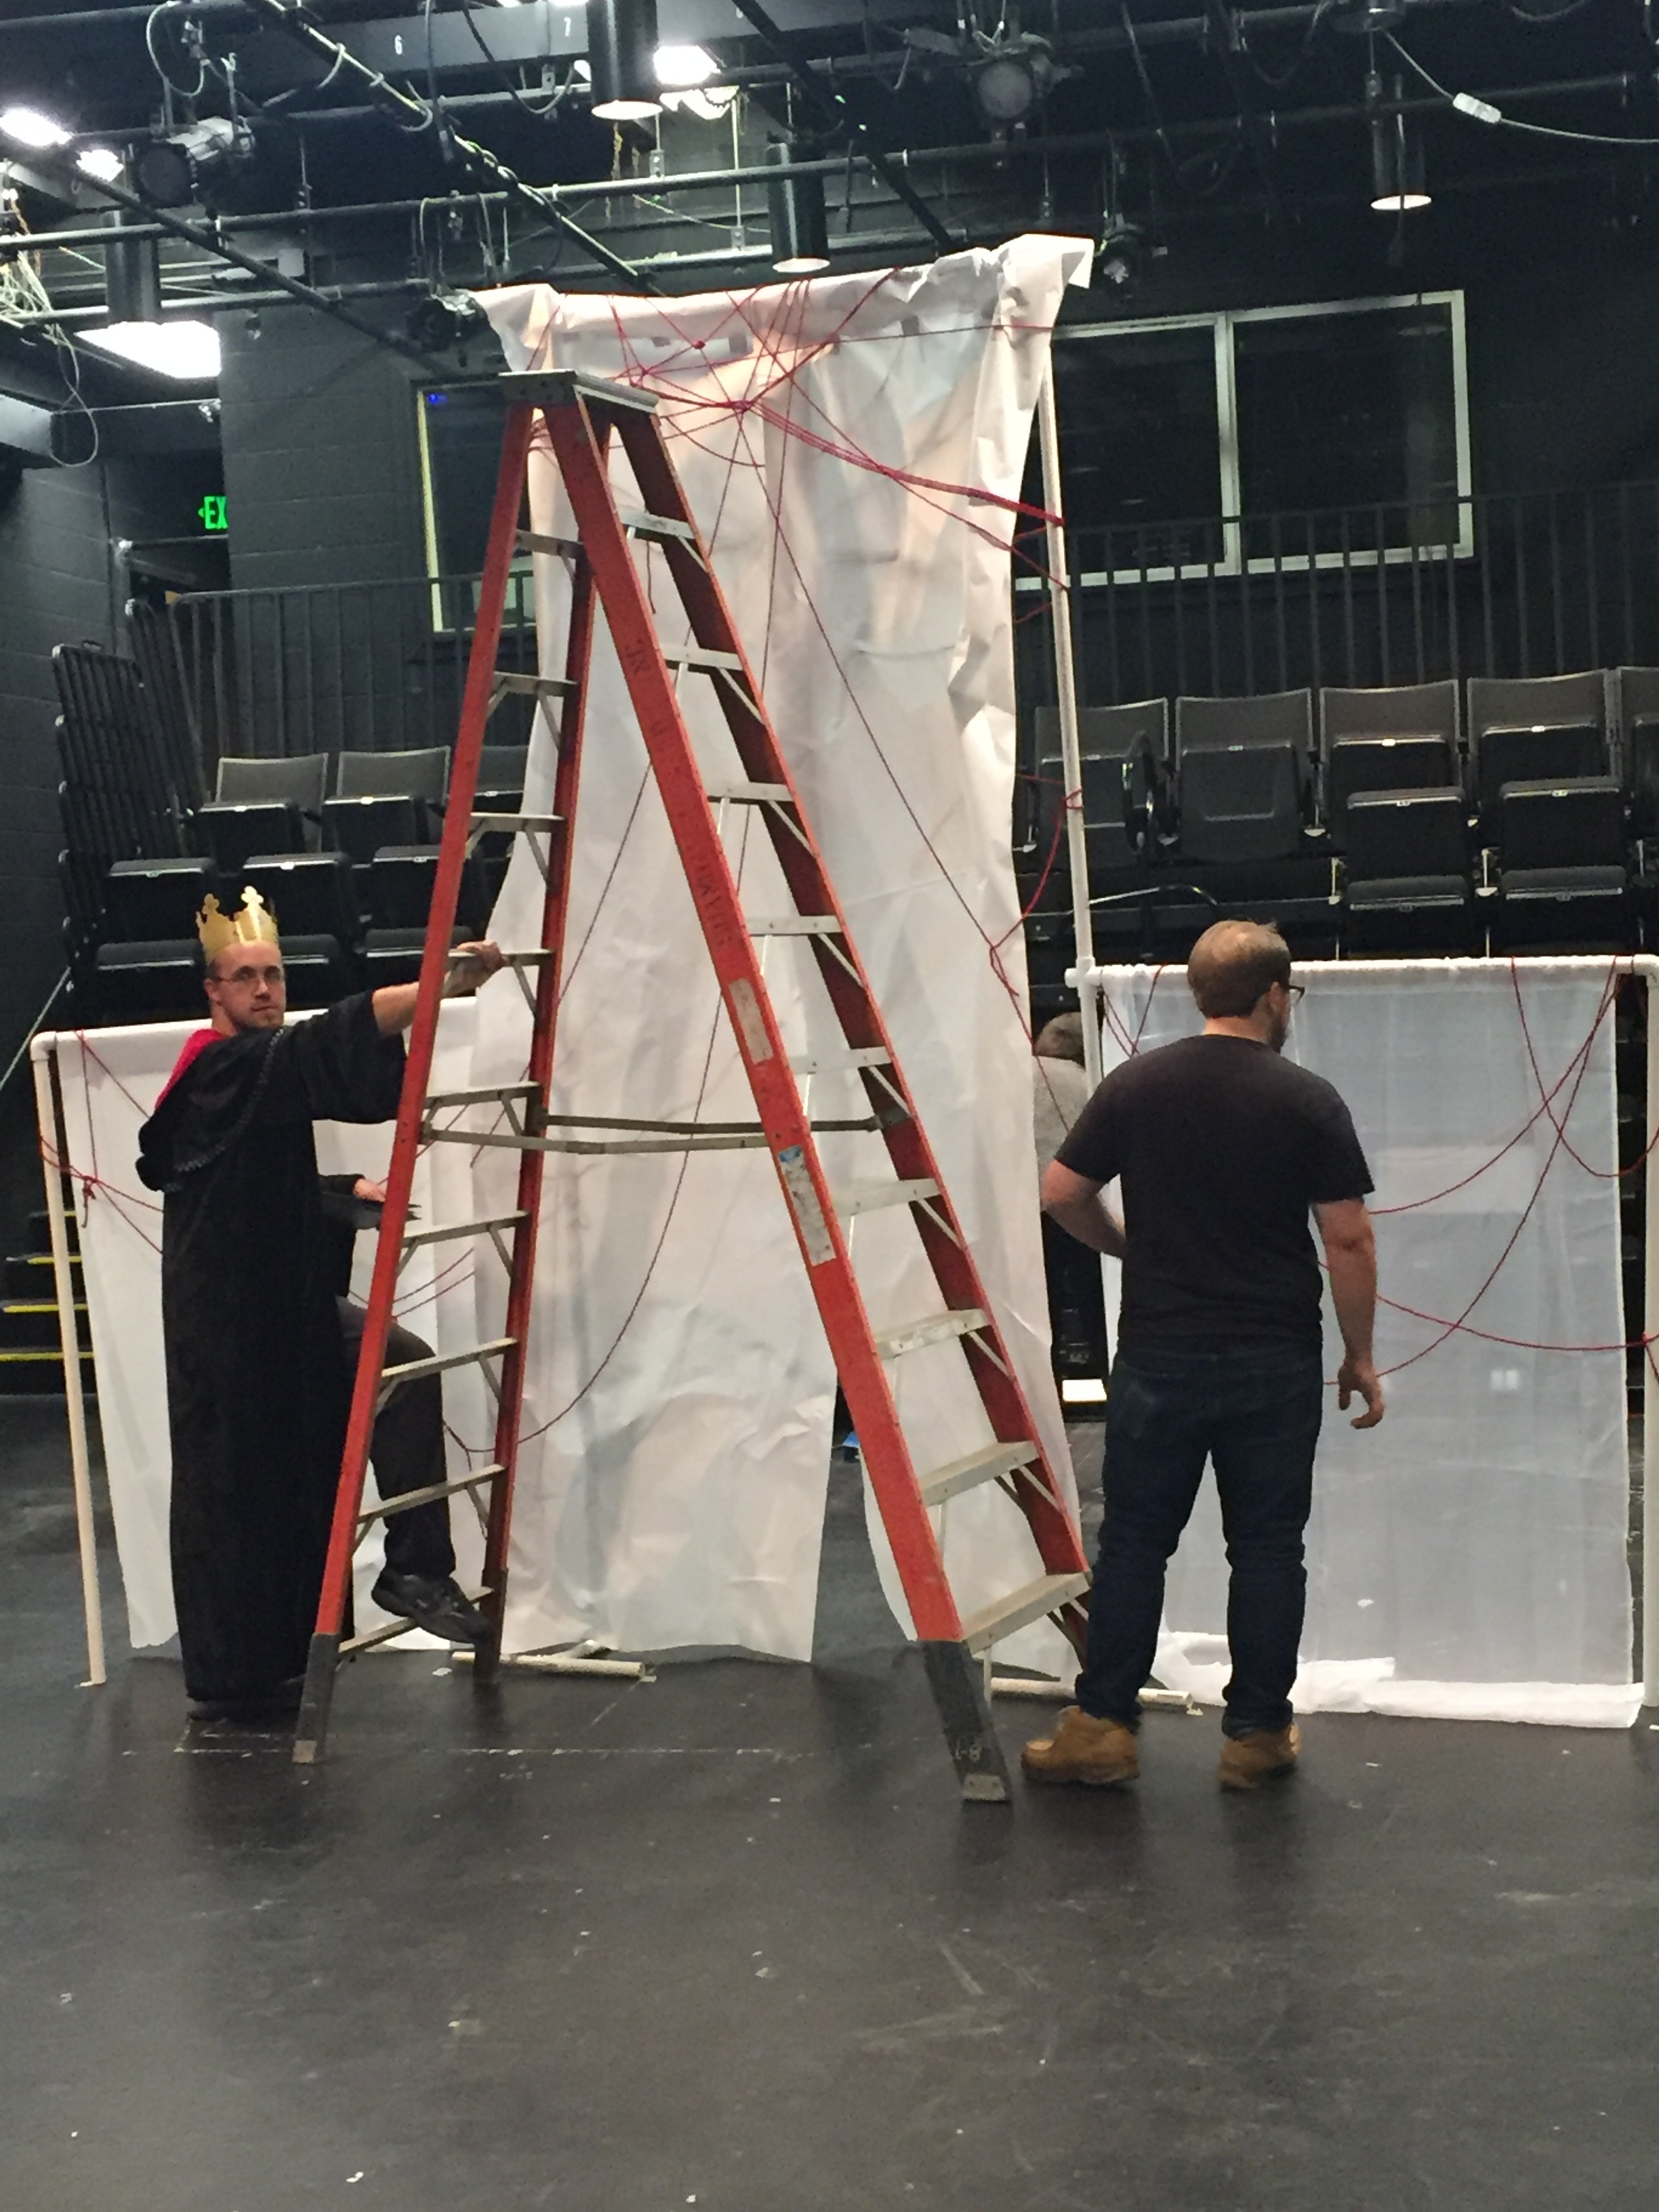 Nate Driscoll (Duncan) and Chance Parker (Macbeth) working on group one's set design, creatively incorporating the materials provided.